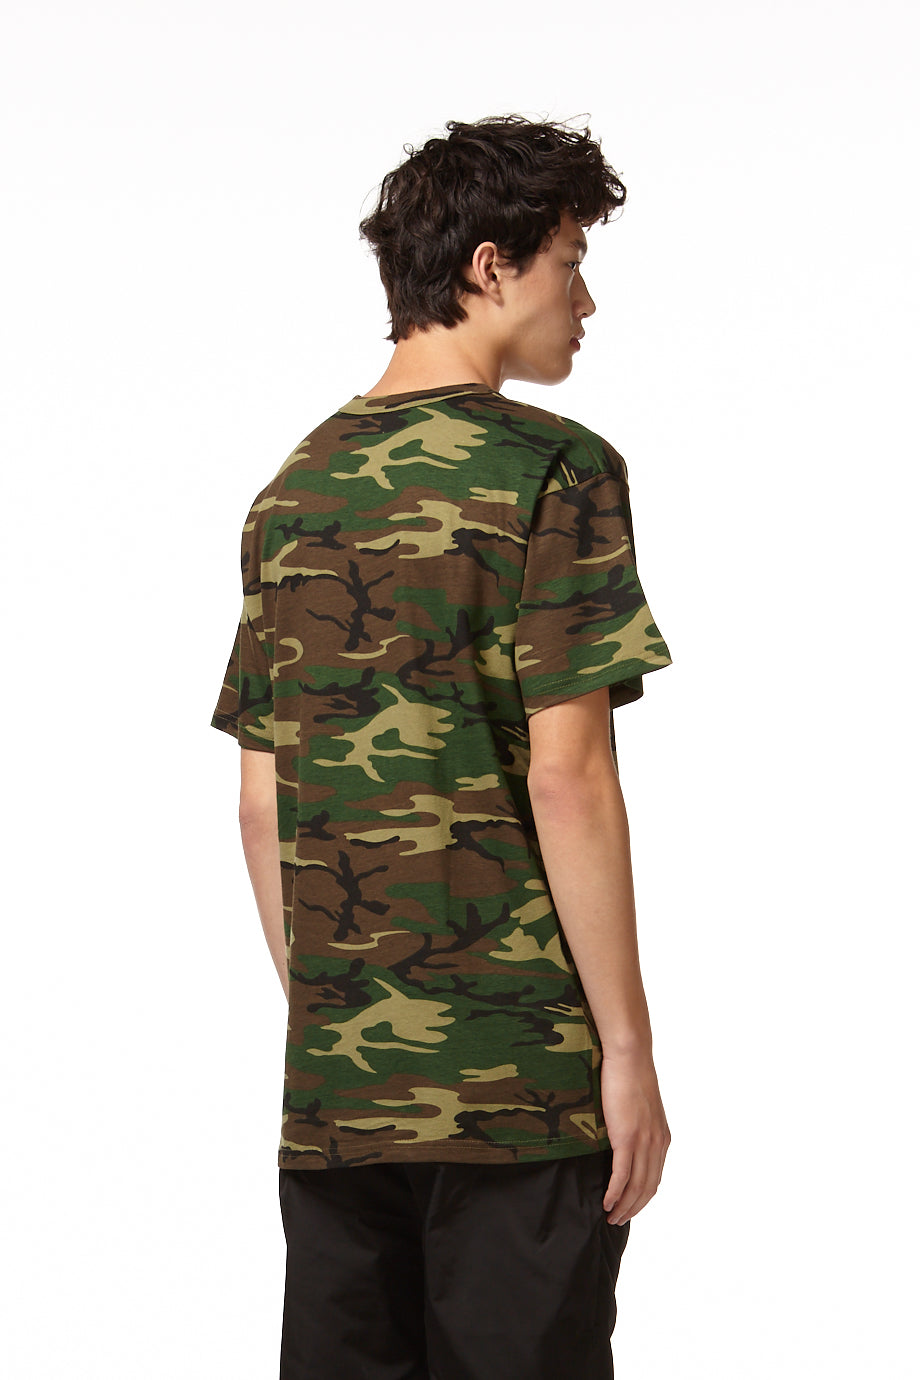 H4X CAMO T-SHIRT green camo back